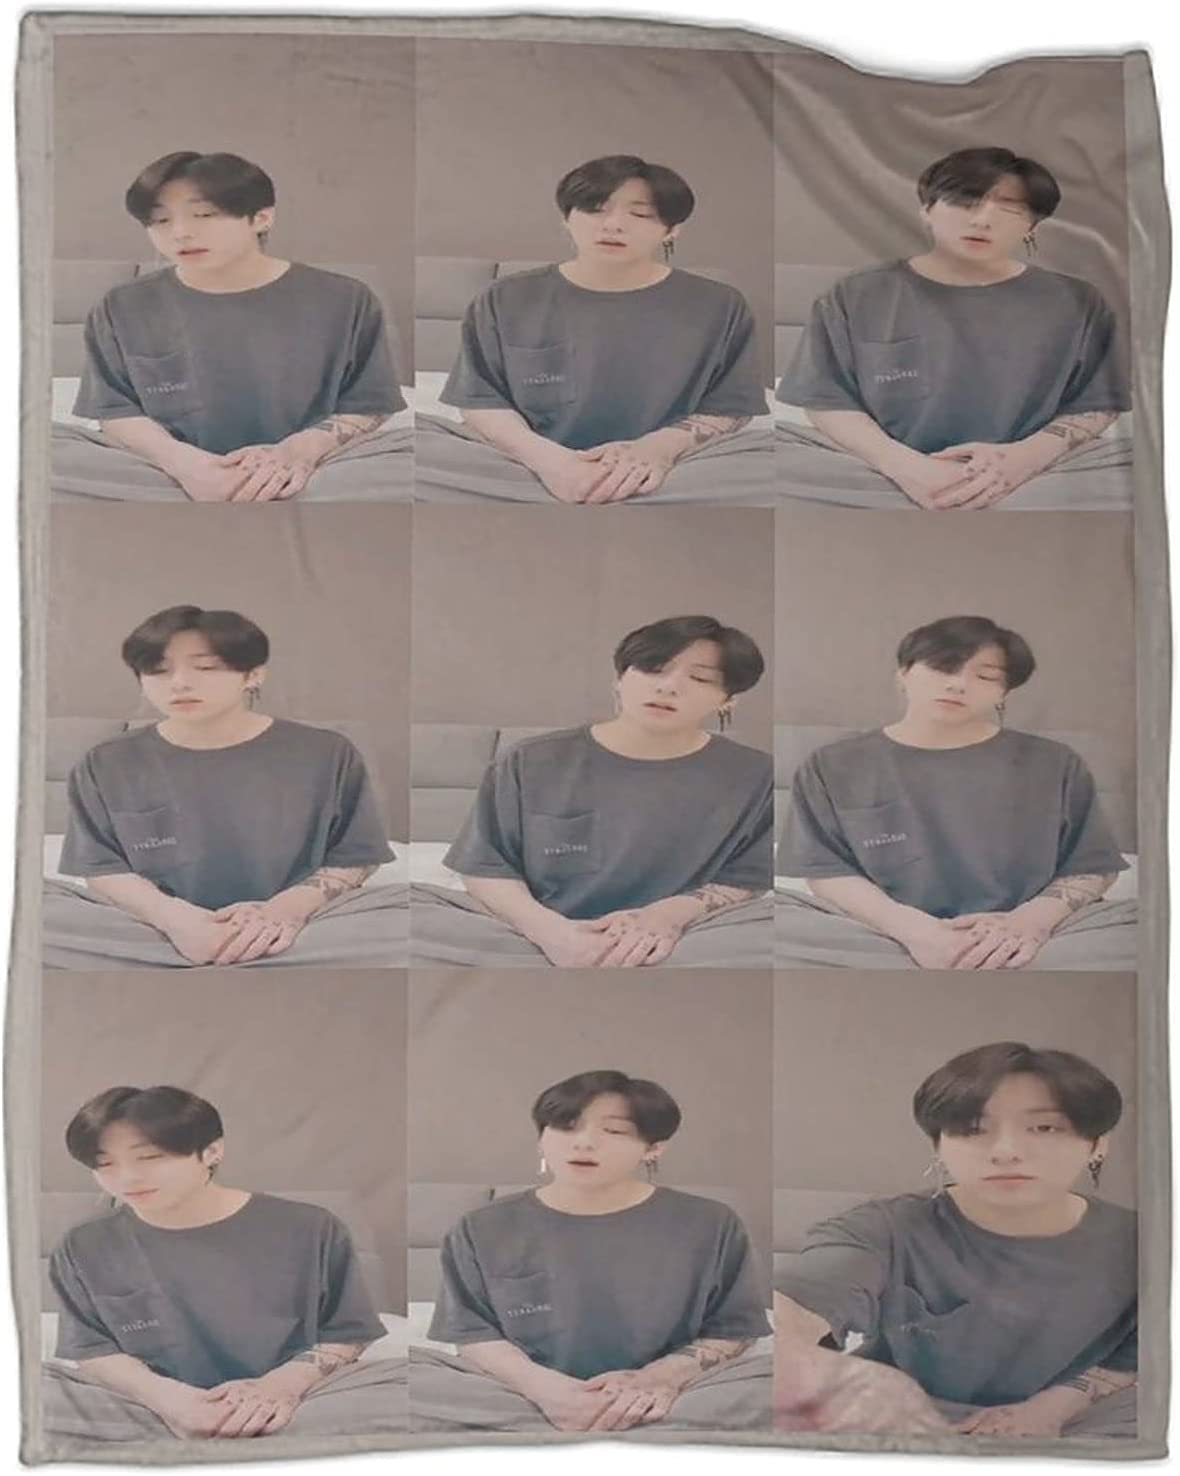 Wugod B-t-s 5% OFF Jungkook Lauv Never Credence Throw Not Su Lightweight Blanket